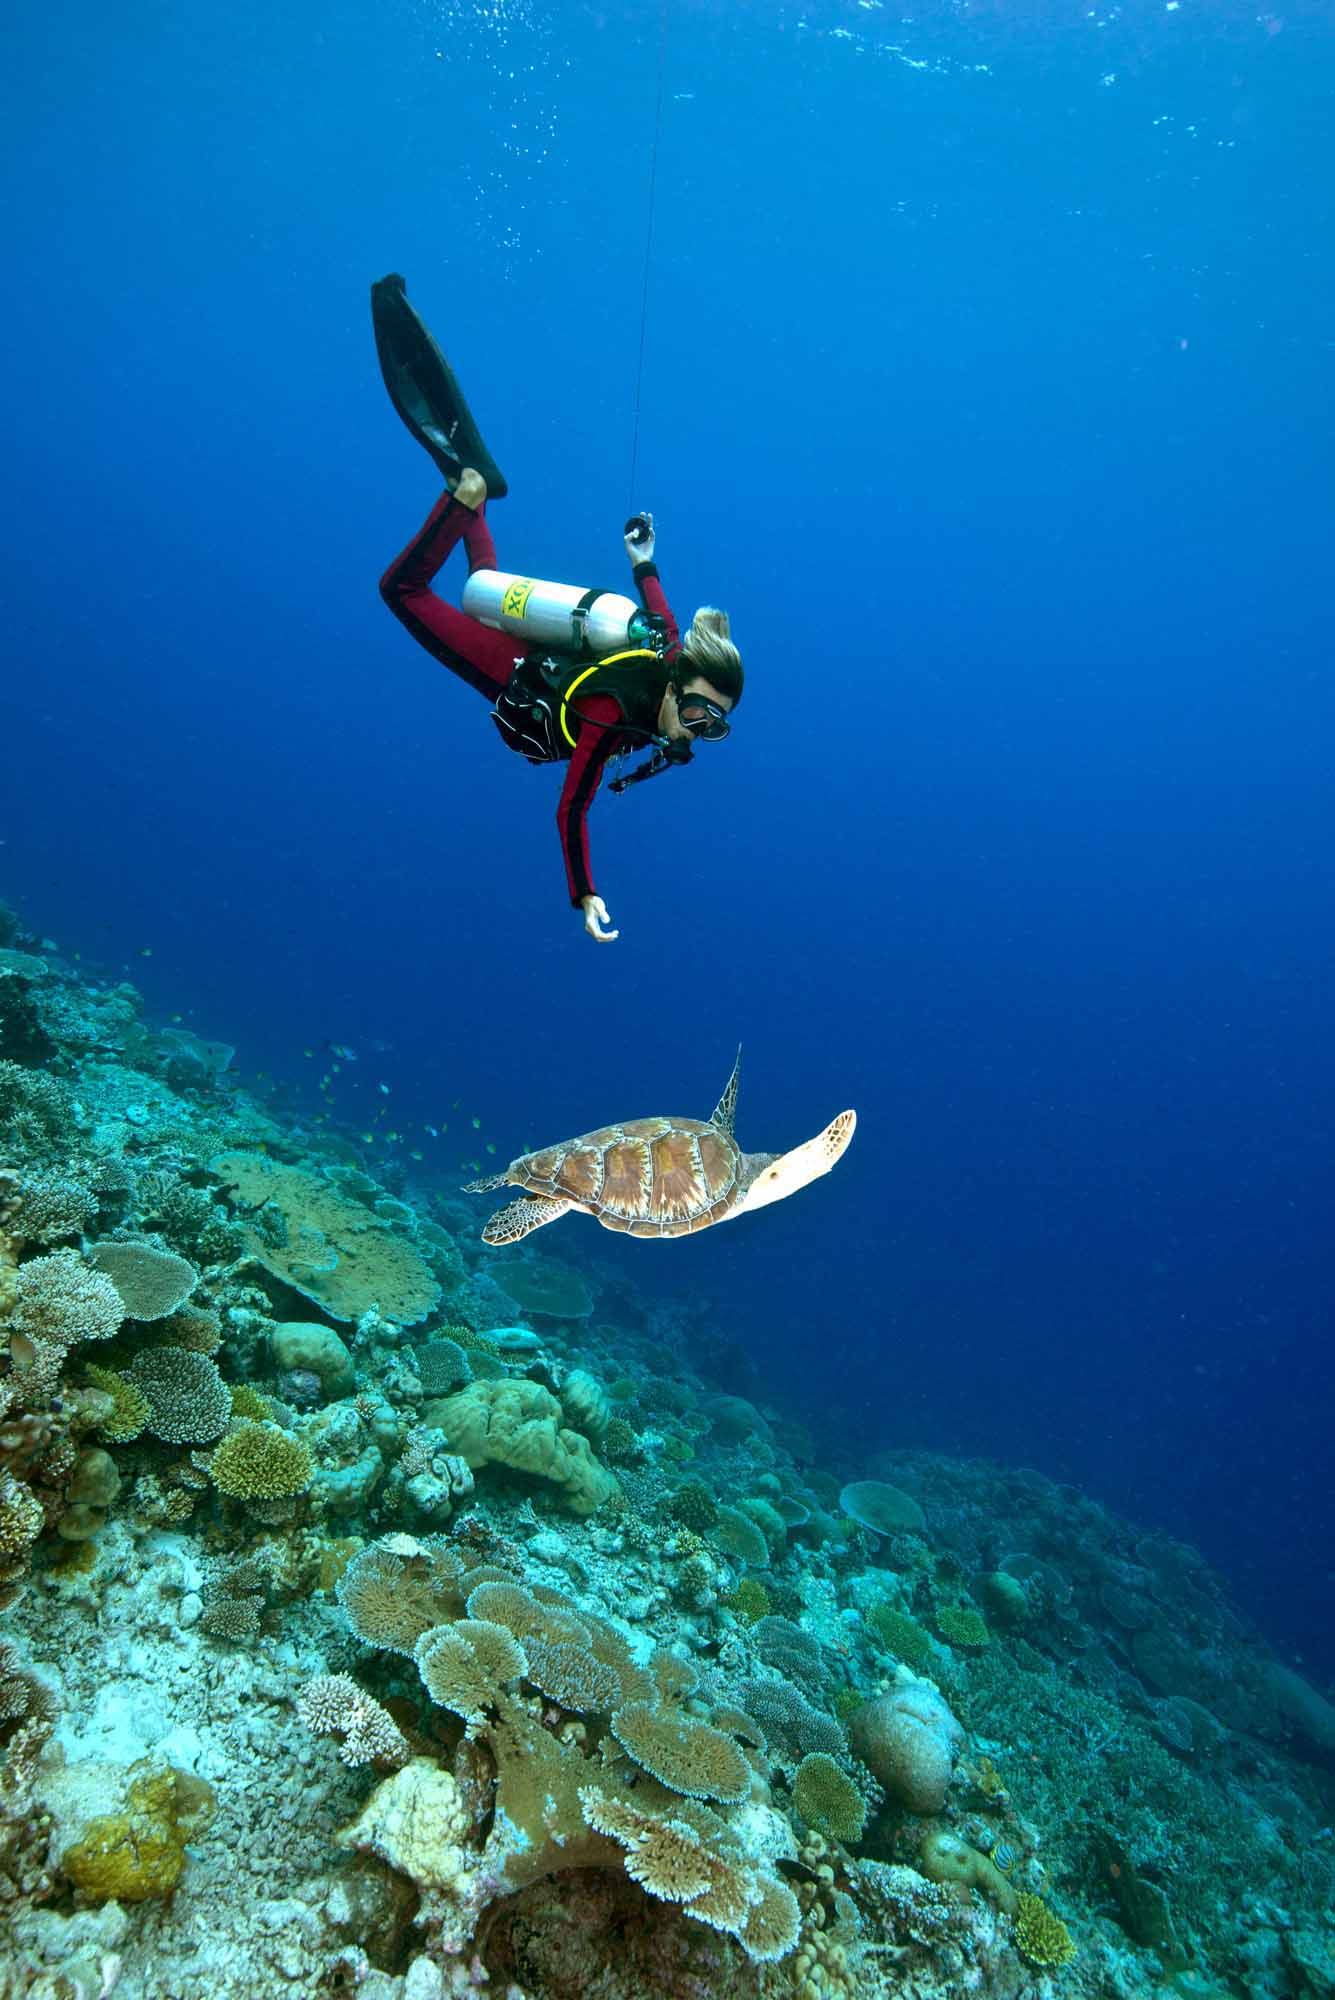 Figure 2: A diver and a Green Turtle interact off an outer wall of Gaafu Alifu Atoll.